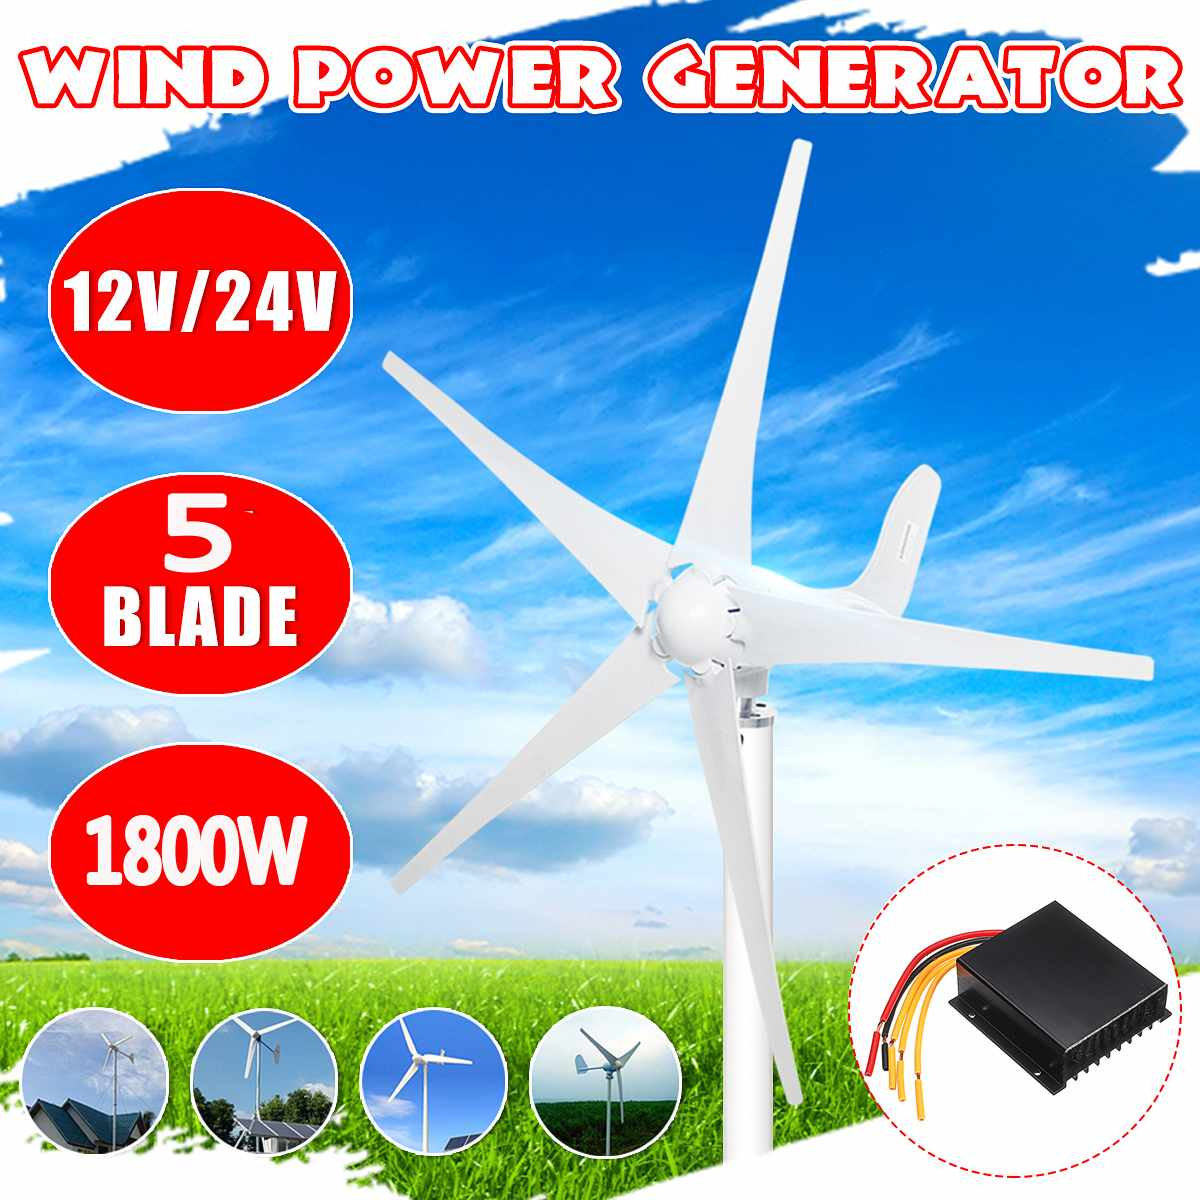 1800W Wind Power Turbines Generator 12V 24V 3/5 Wind Blades Option With Waterproof Charge Controller Fit for Home Or Camping1800W Wind Power Turbines Generator 12V 24V 3/5 Wind Blades Option With Waterproof Charge Controller Fit for Home Or Camping